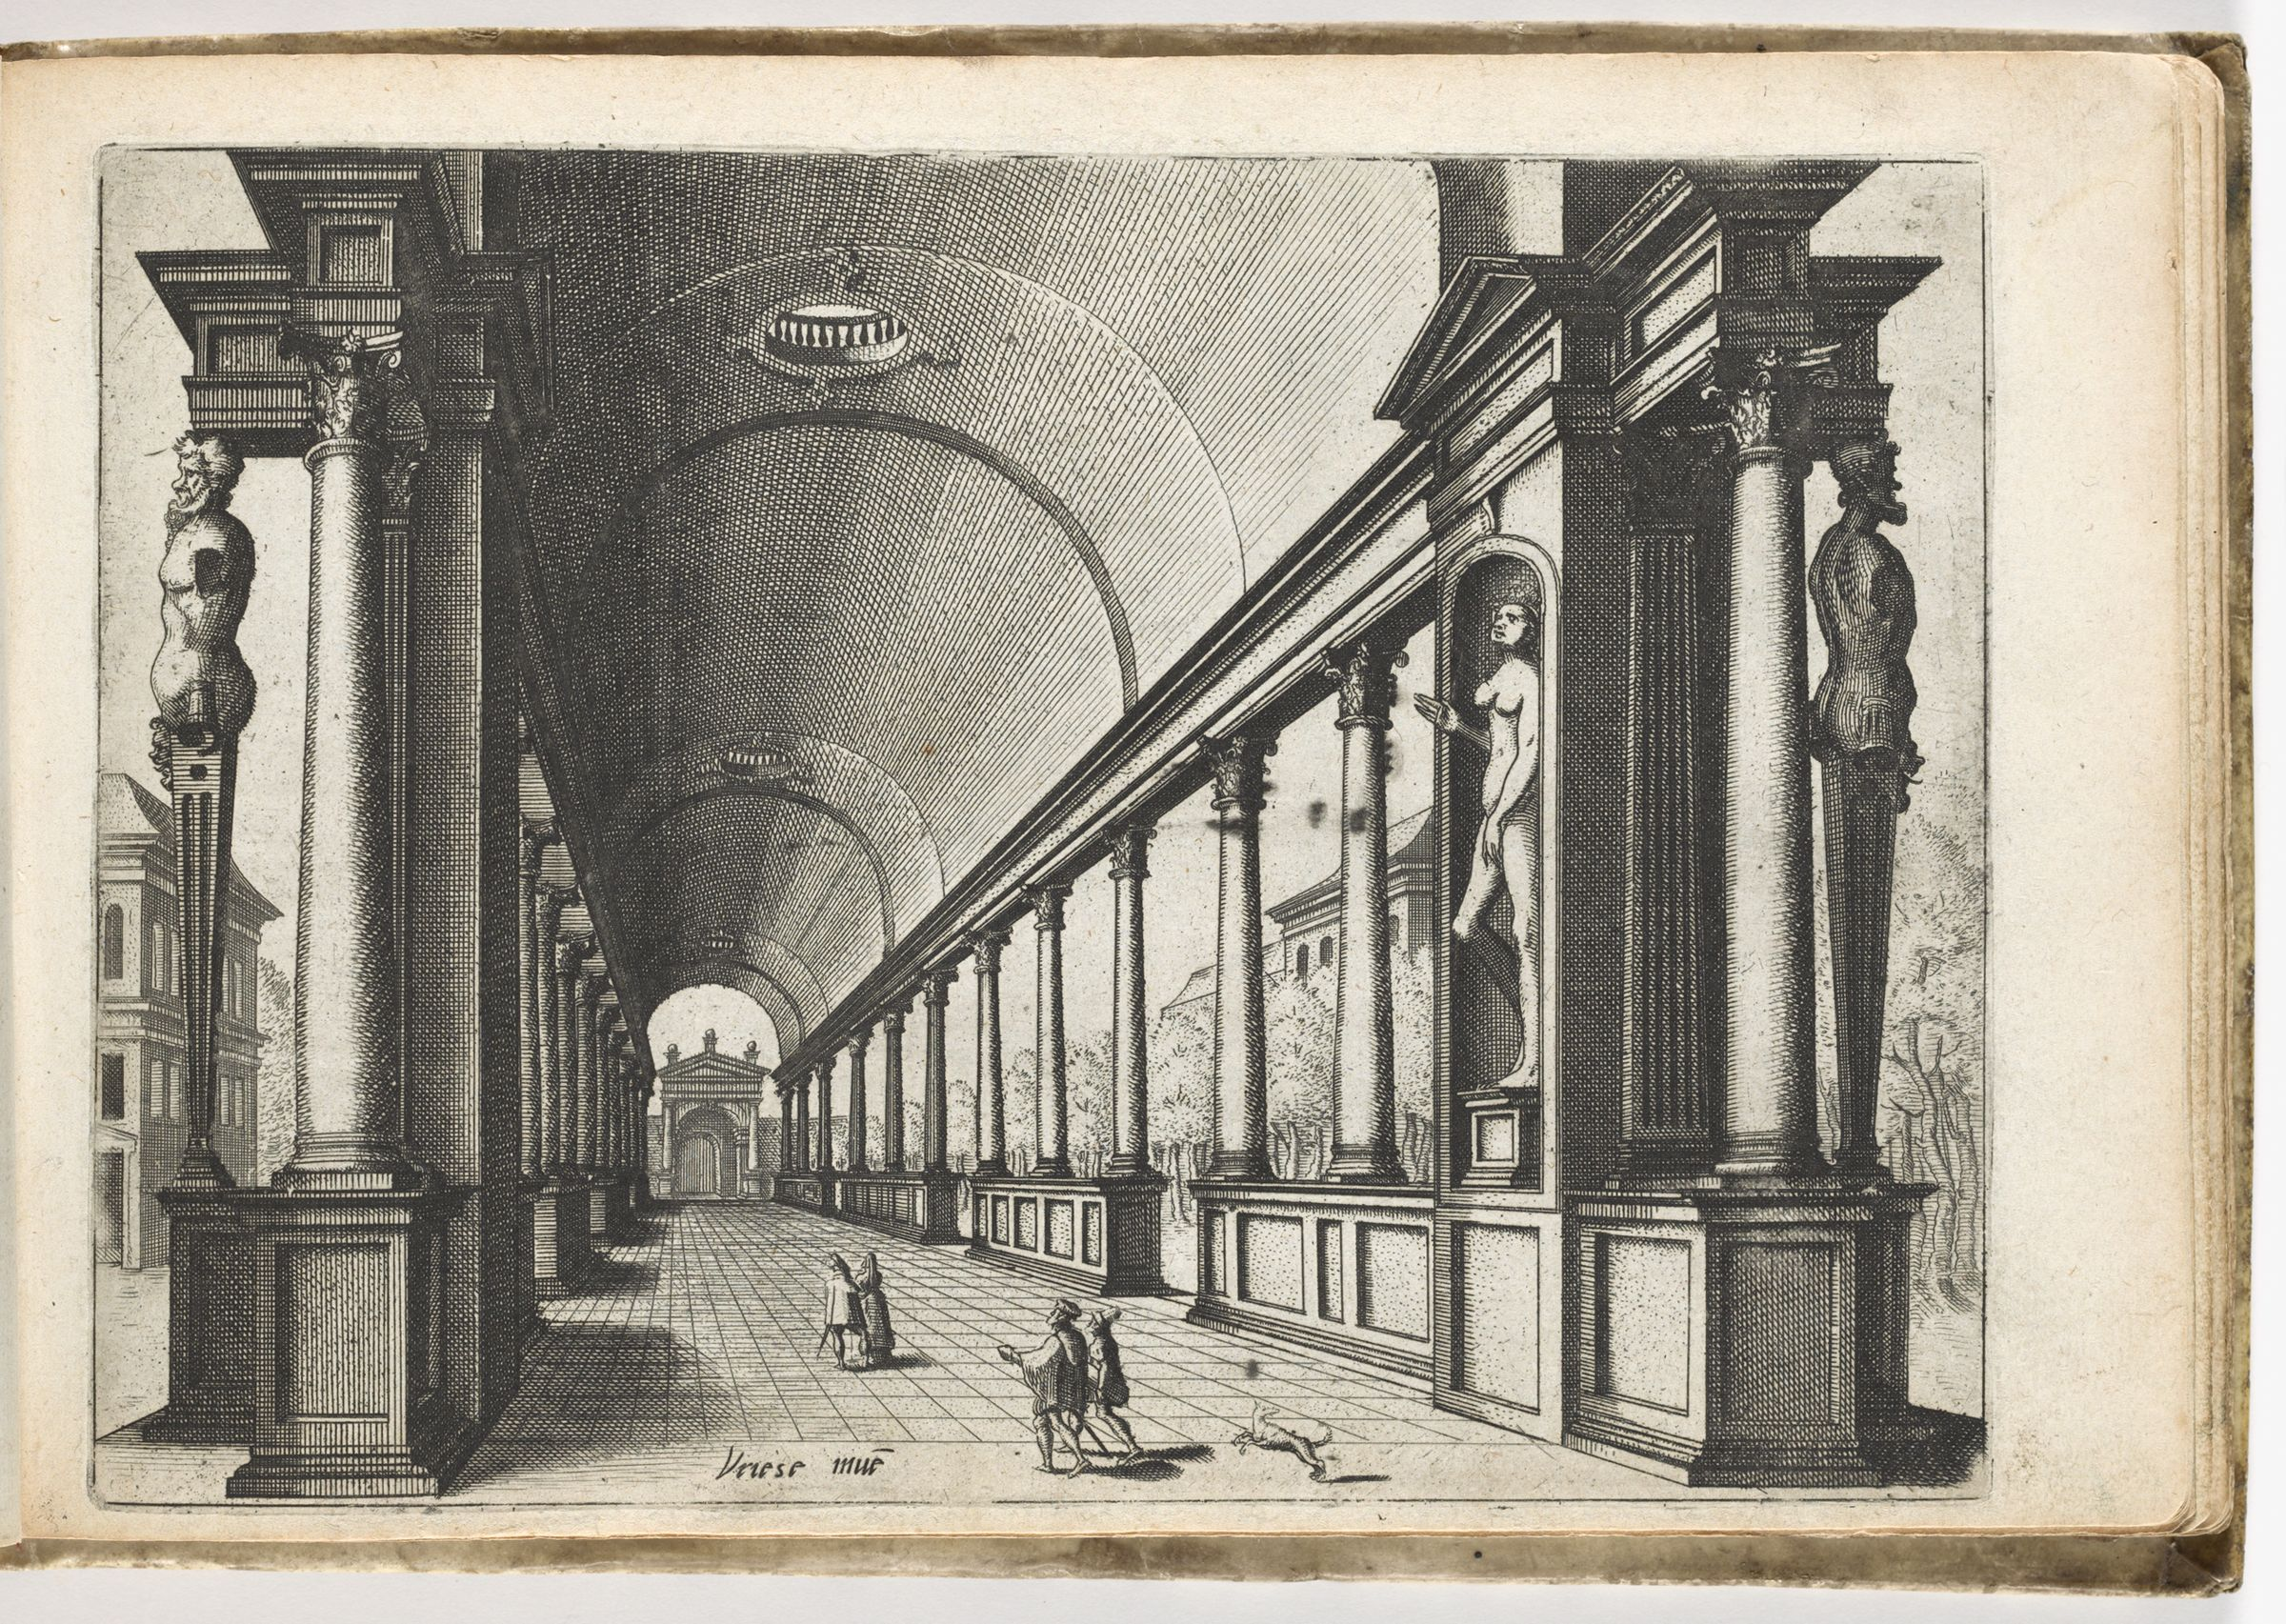 Vaulted Arcade With Columns Of The Corinthian Order And Male Terms Flanking The Entrance (N.h.)